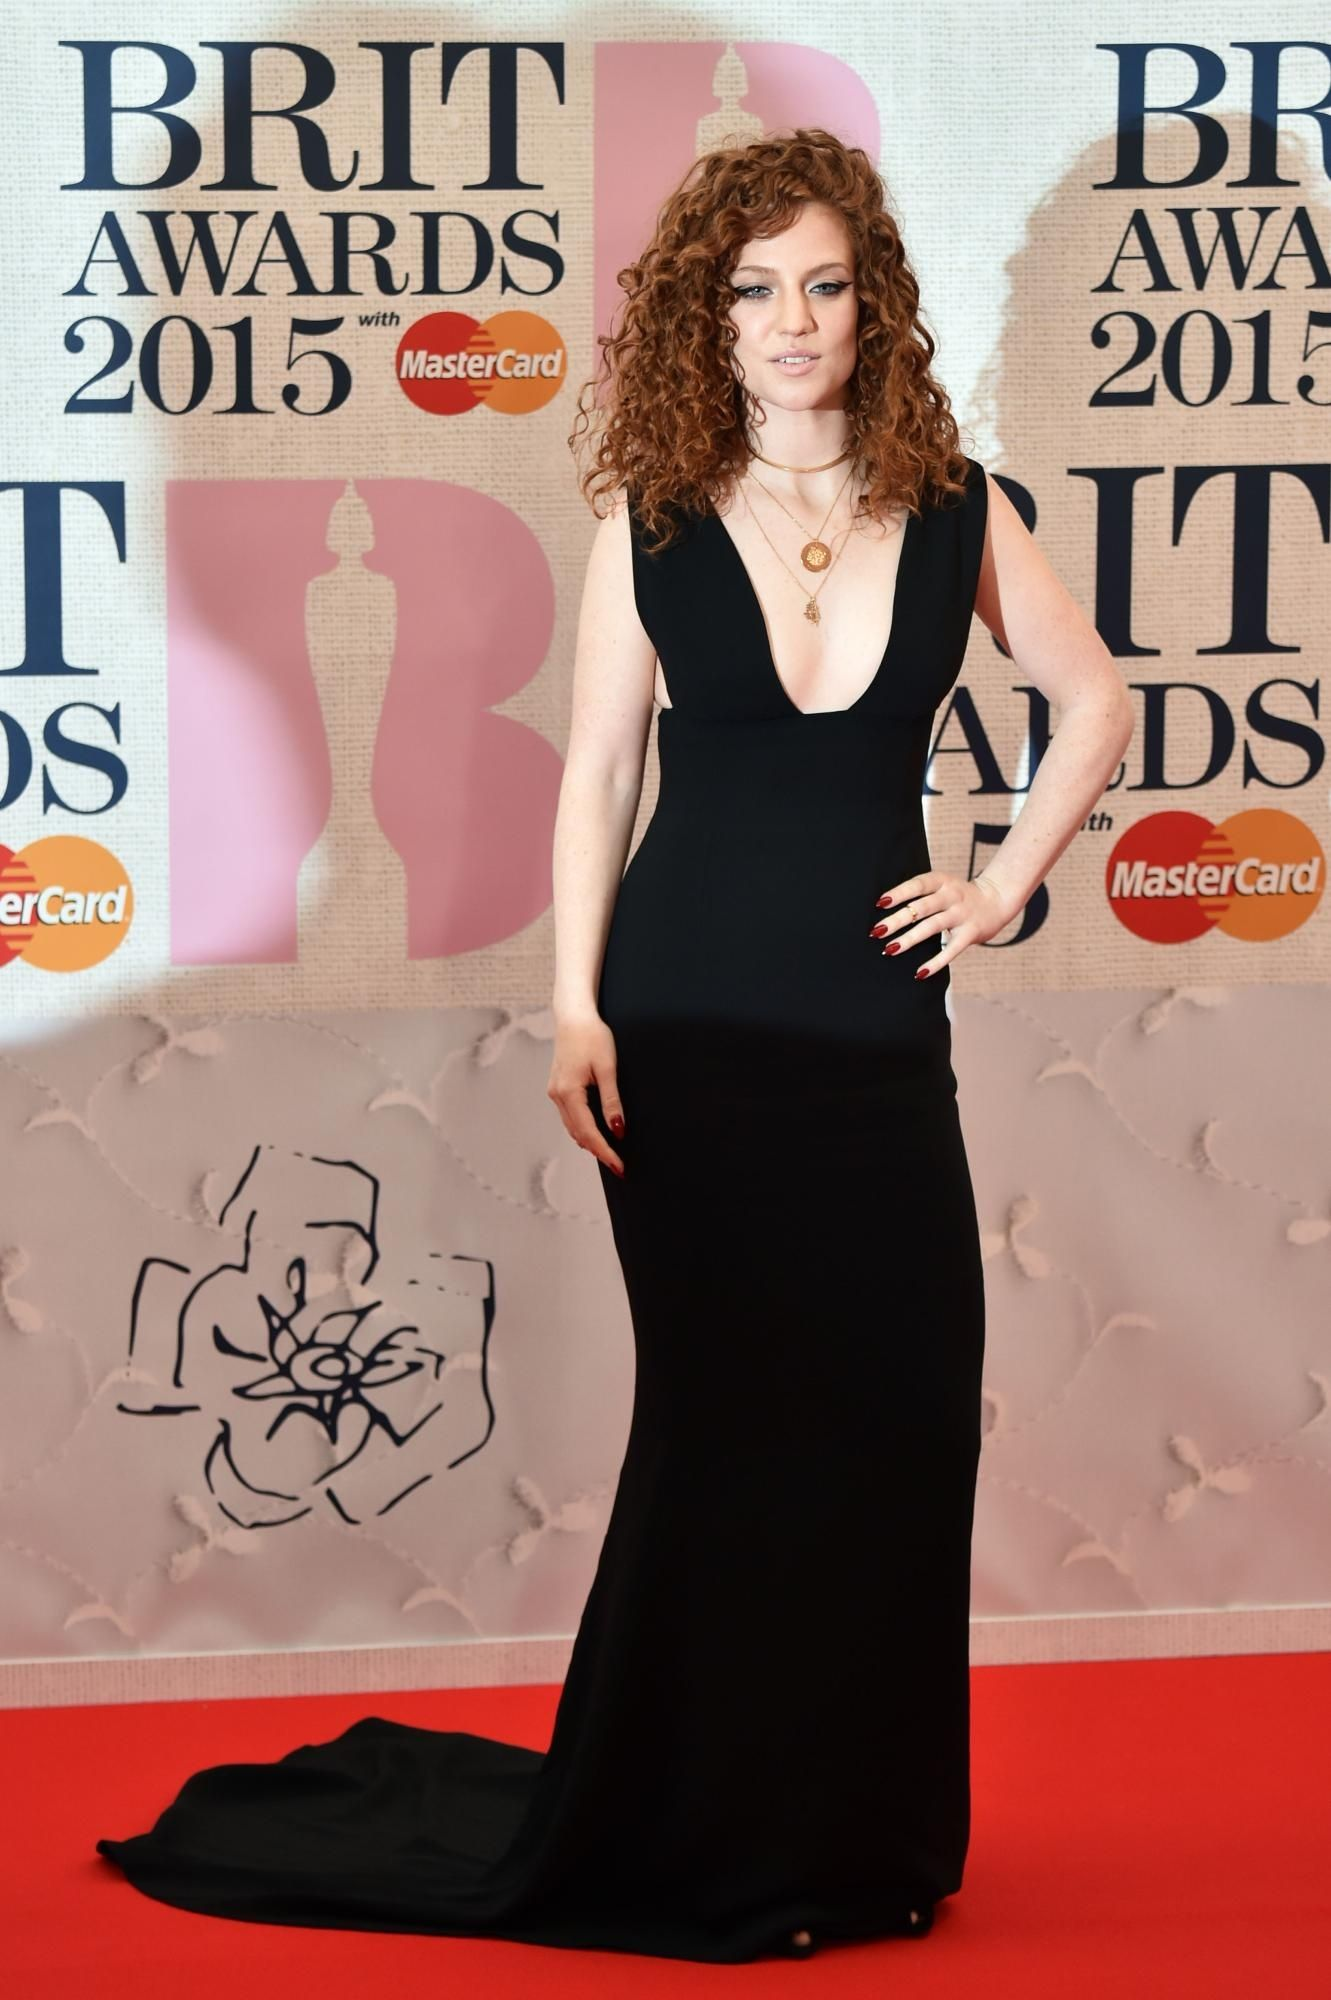 Cleavage Jess Glynne nudes (97 photos), Pussy, Is a cute, Boobs, braless 2019